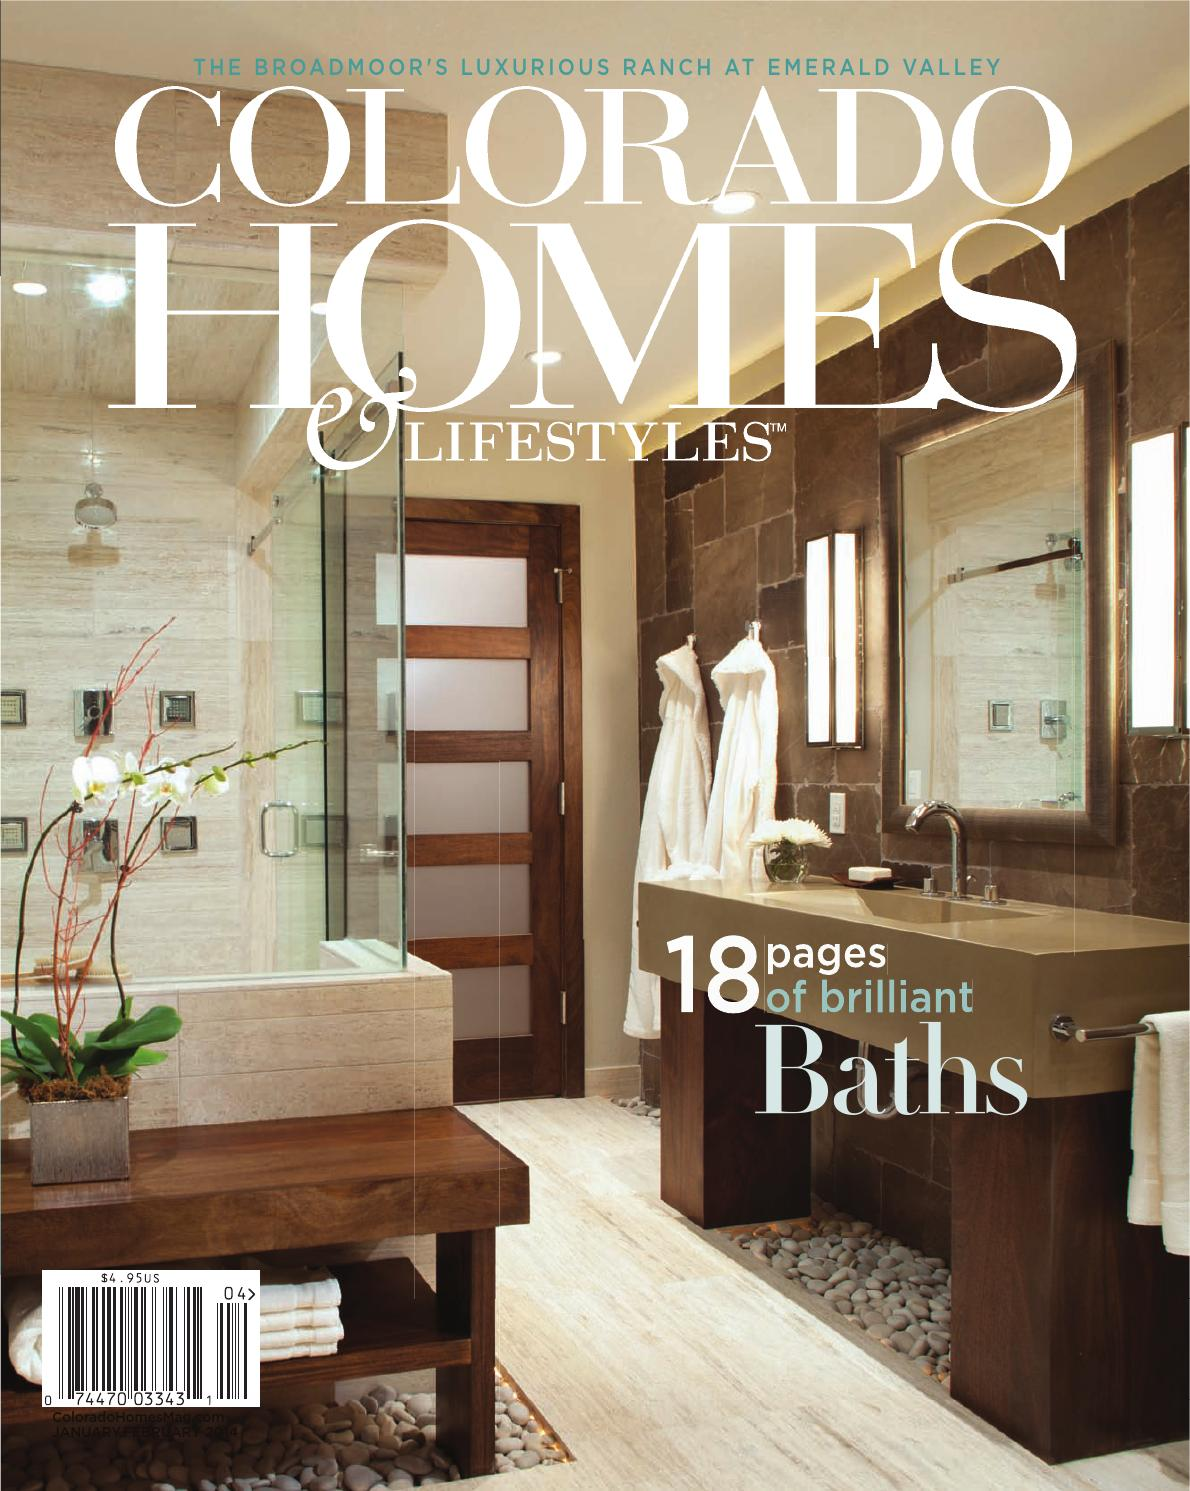 Colorado Homes & Lifestyles April 2014 by Network Communications Inc